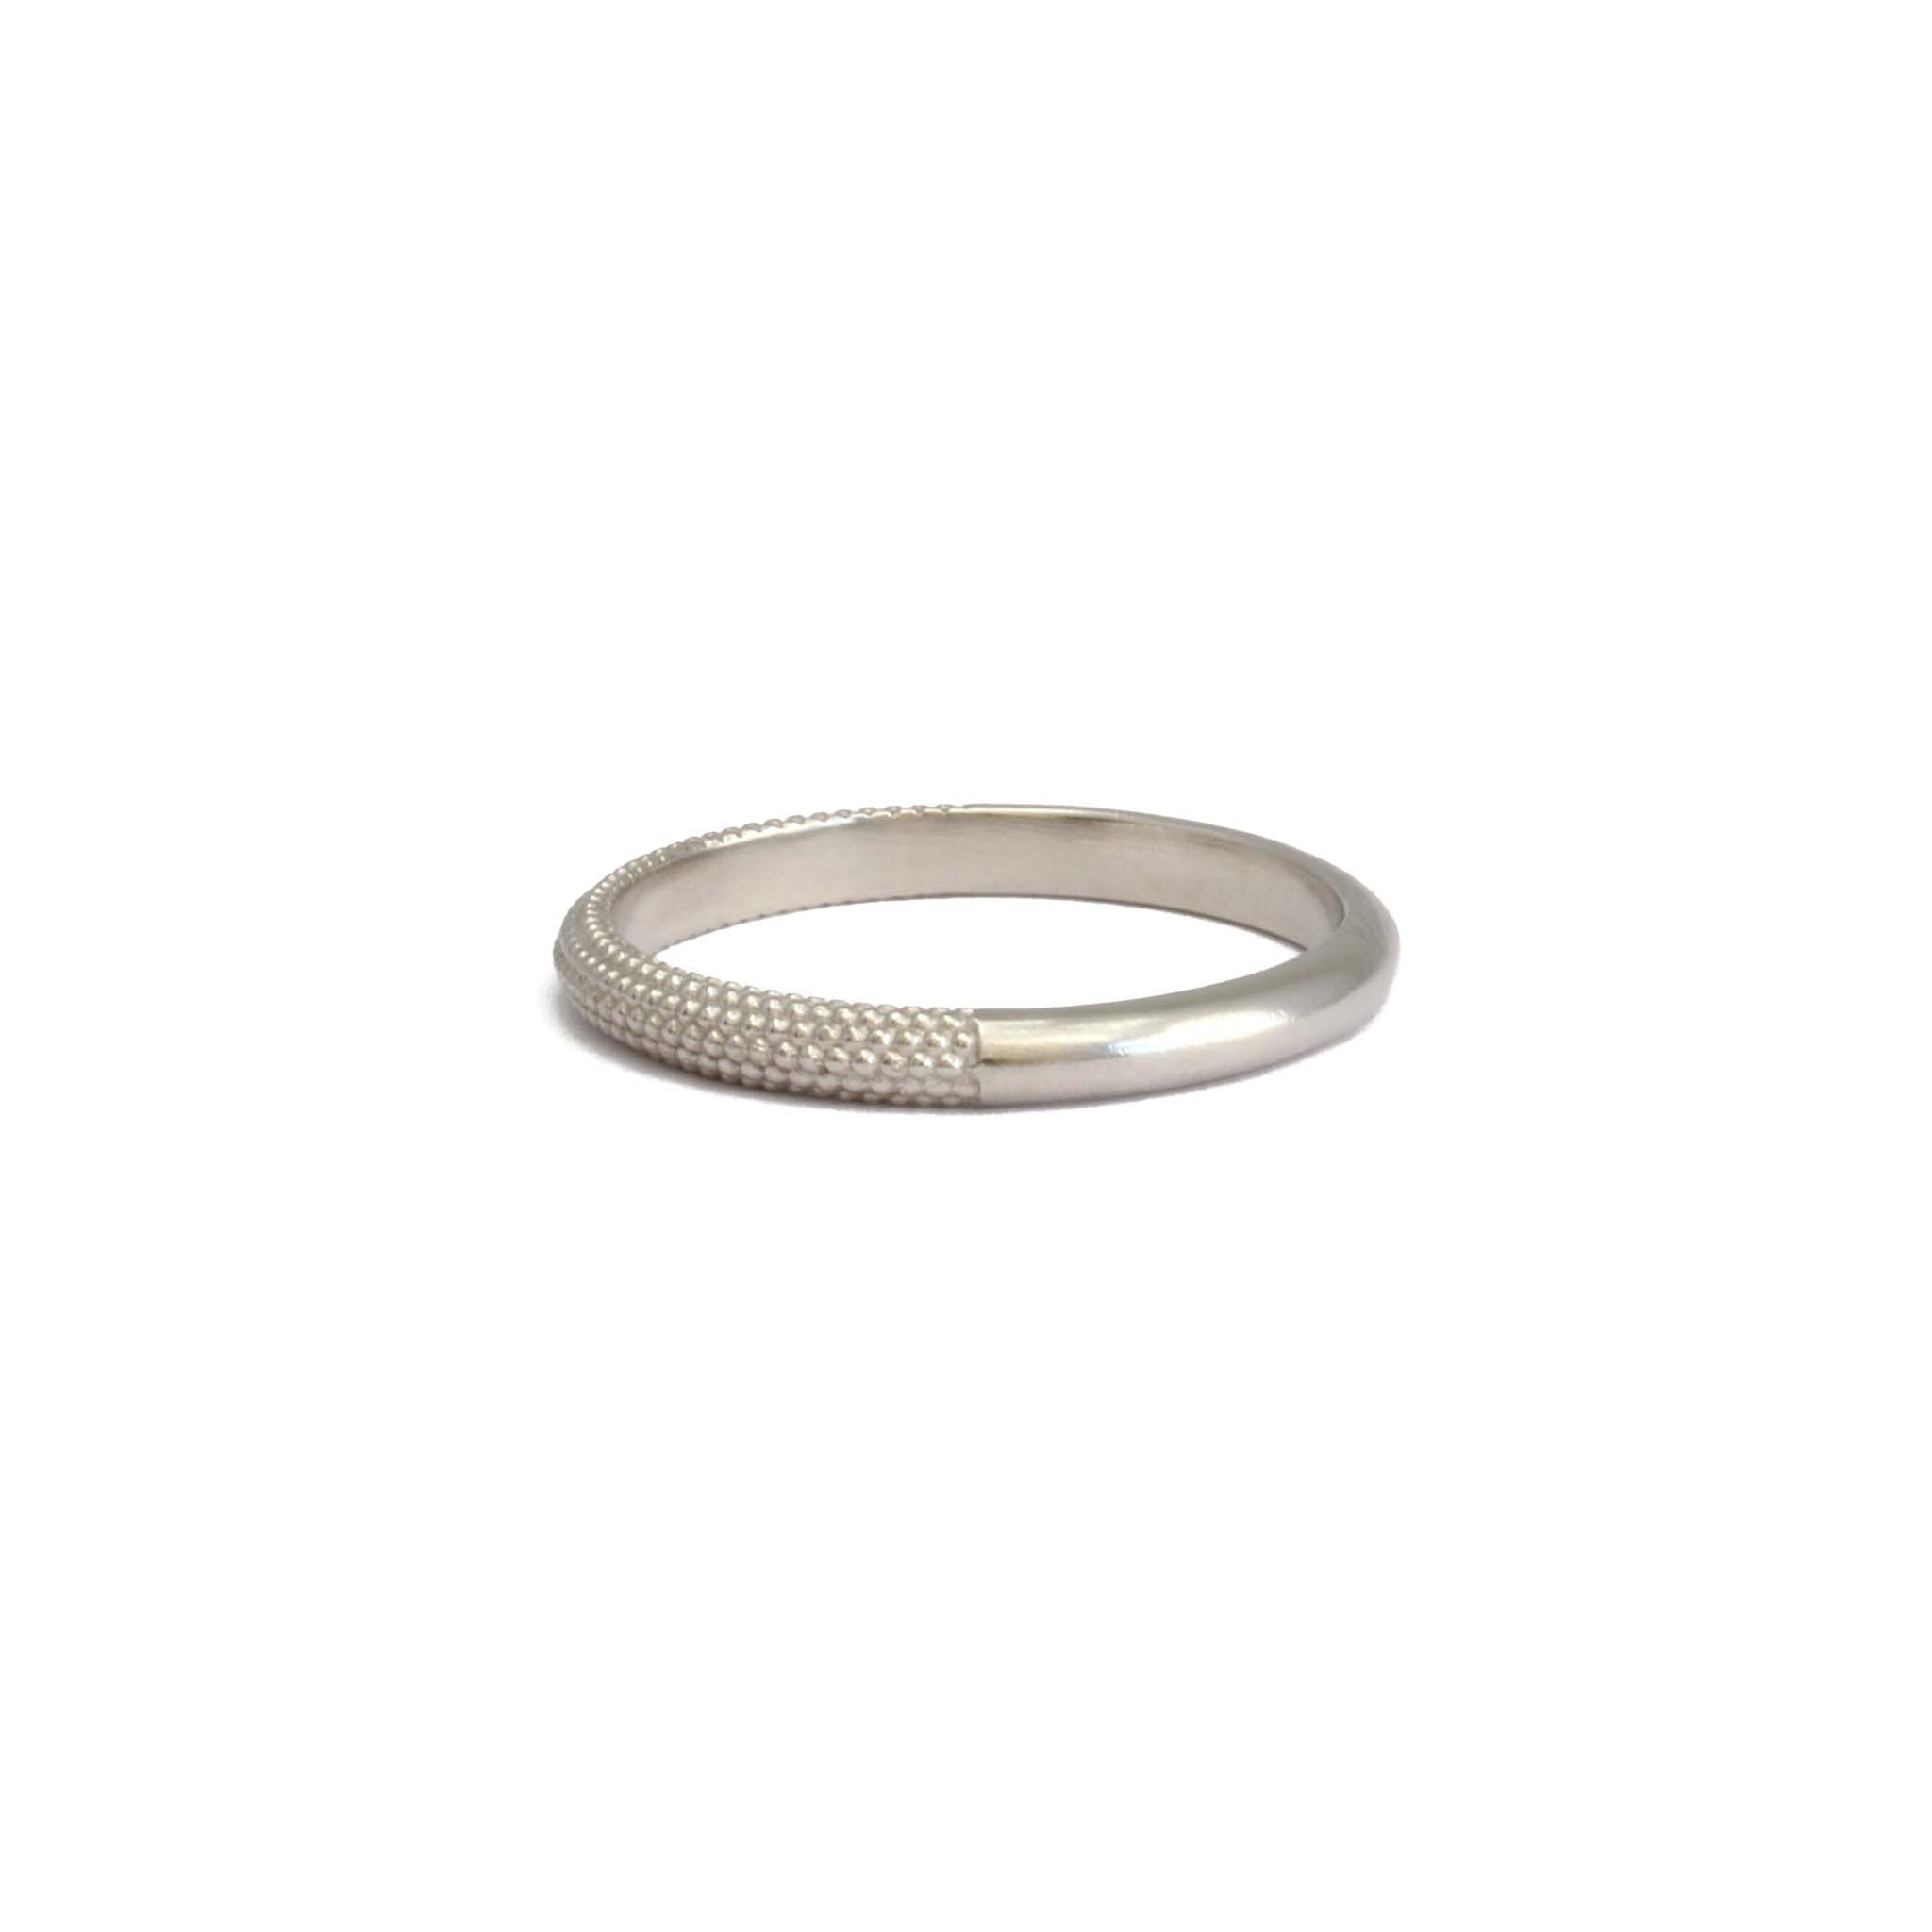 2.25mm Tyro Half Band 9ct gold